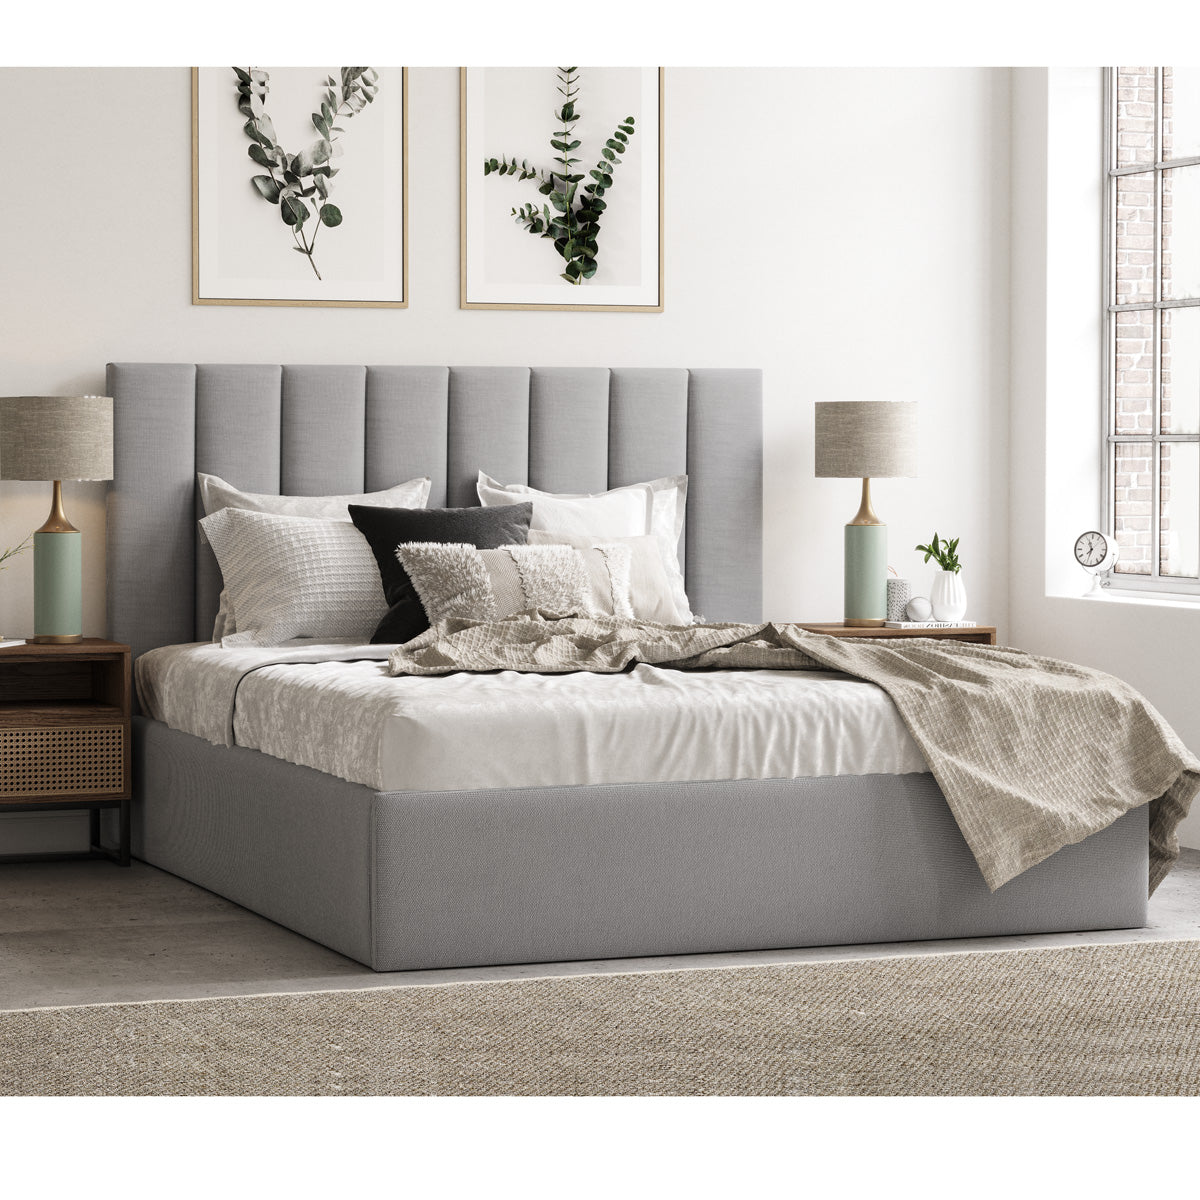 Celine Gas Lift Storage Bed Frame (Grey Fabric)